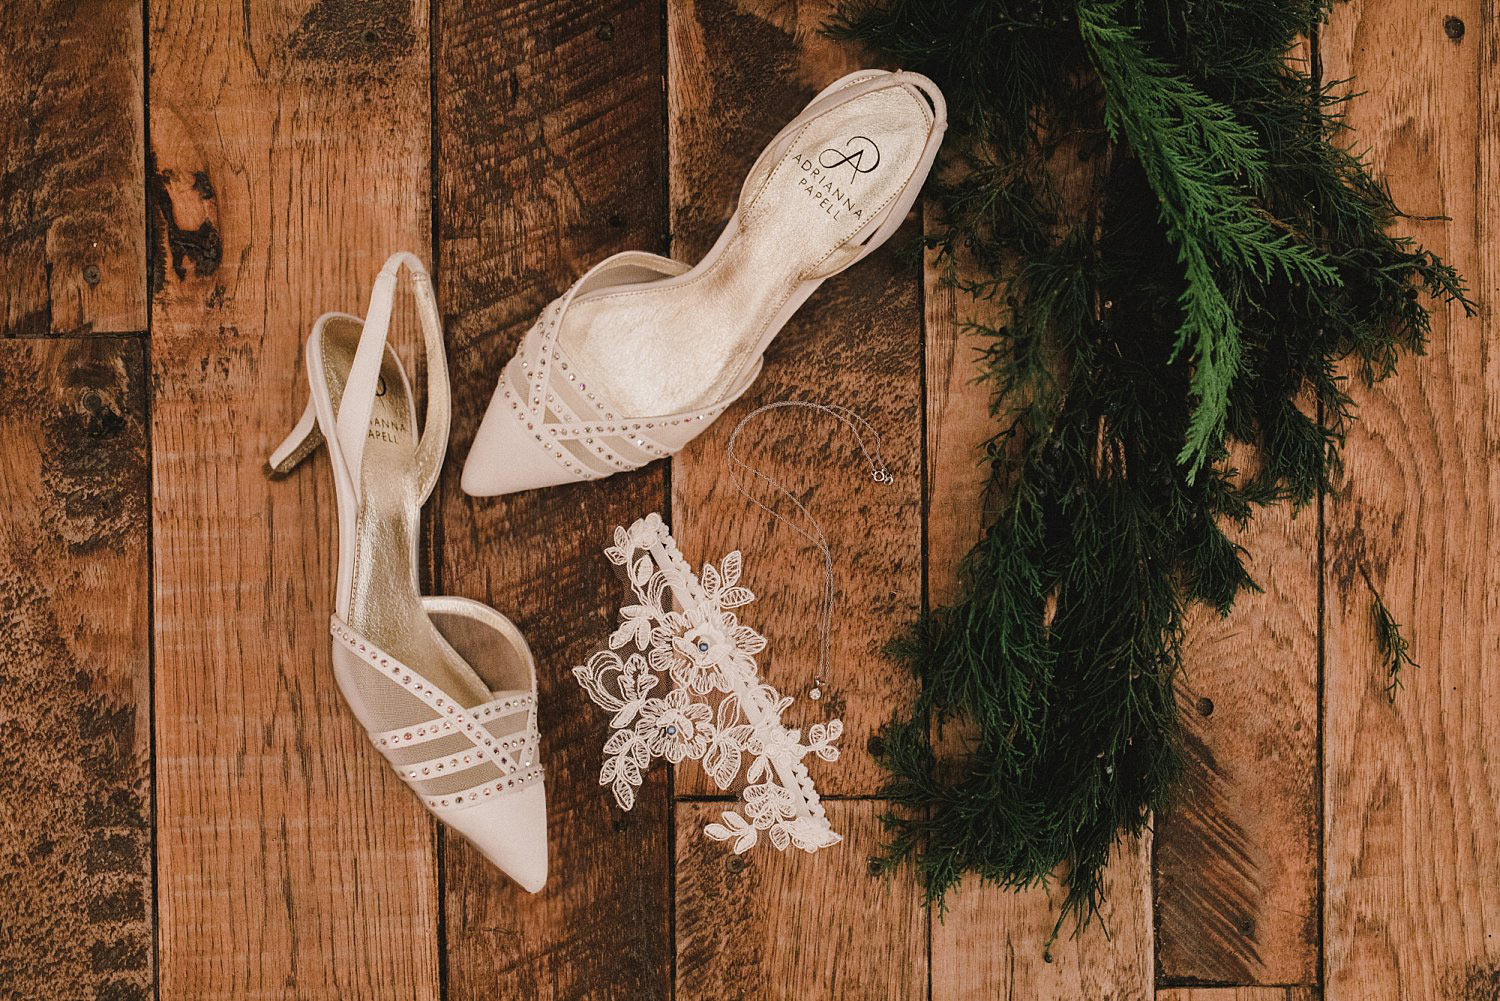 Hollow Hill Event Center Wedding bride;s shoes and garder with evergreen greenery